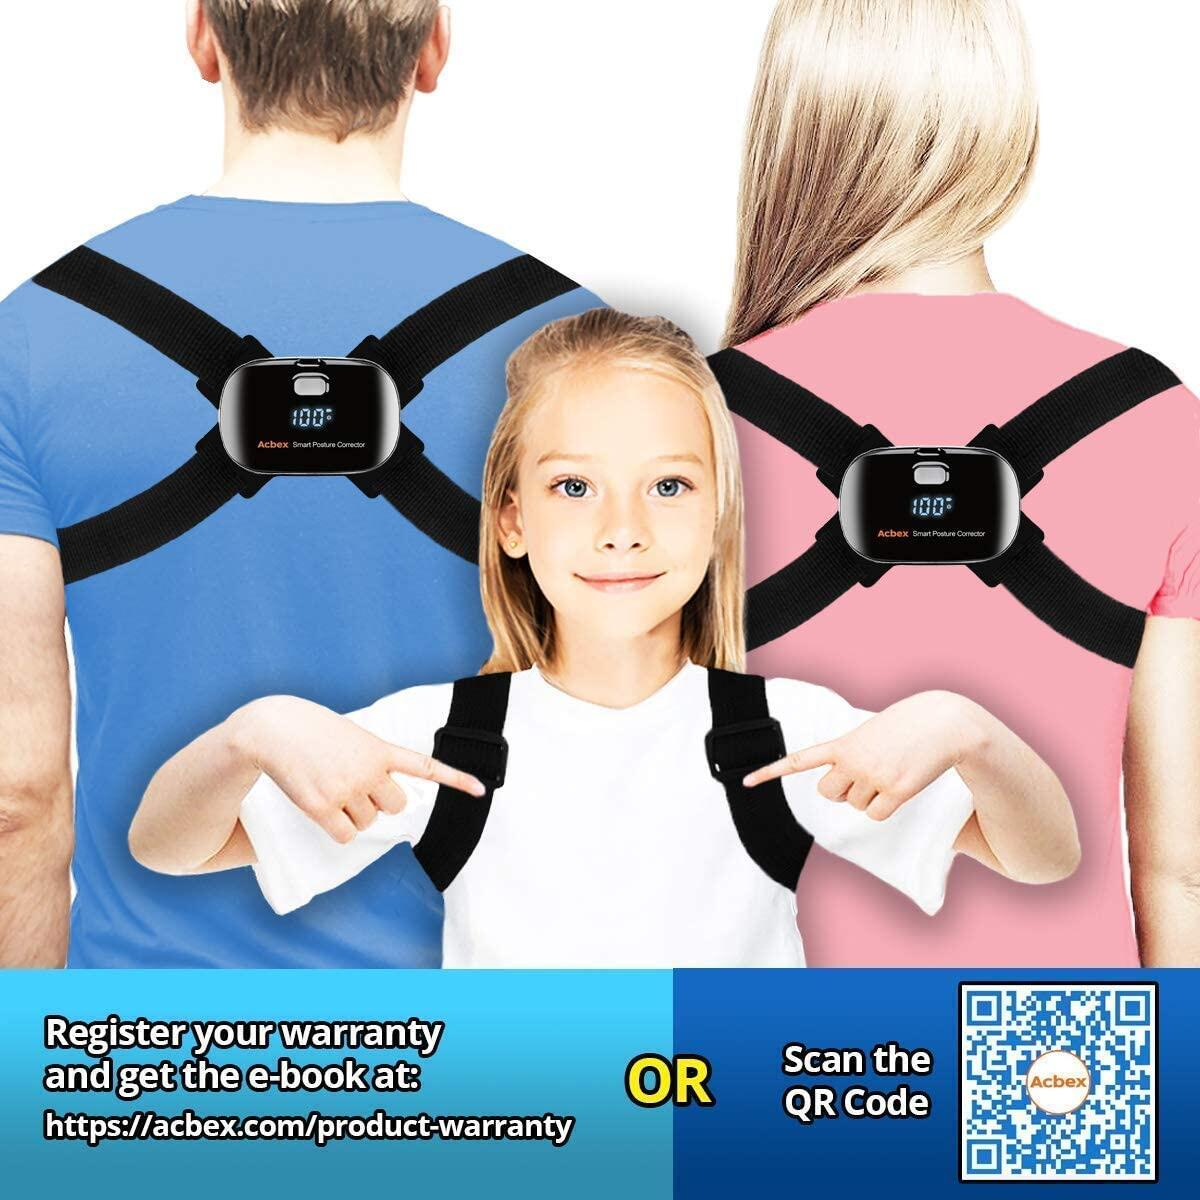 Smart Posture Corrector for Women Men Kids - Adjustable Back Brace Straightener with Slouch Detector, Posture Trainer for Humpback Correction and Pain Relief, Fits Chest Sizes 25